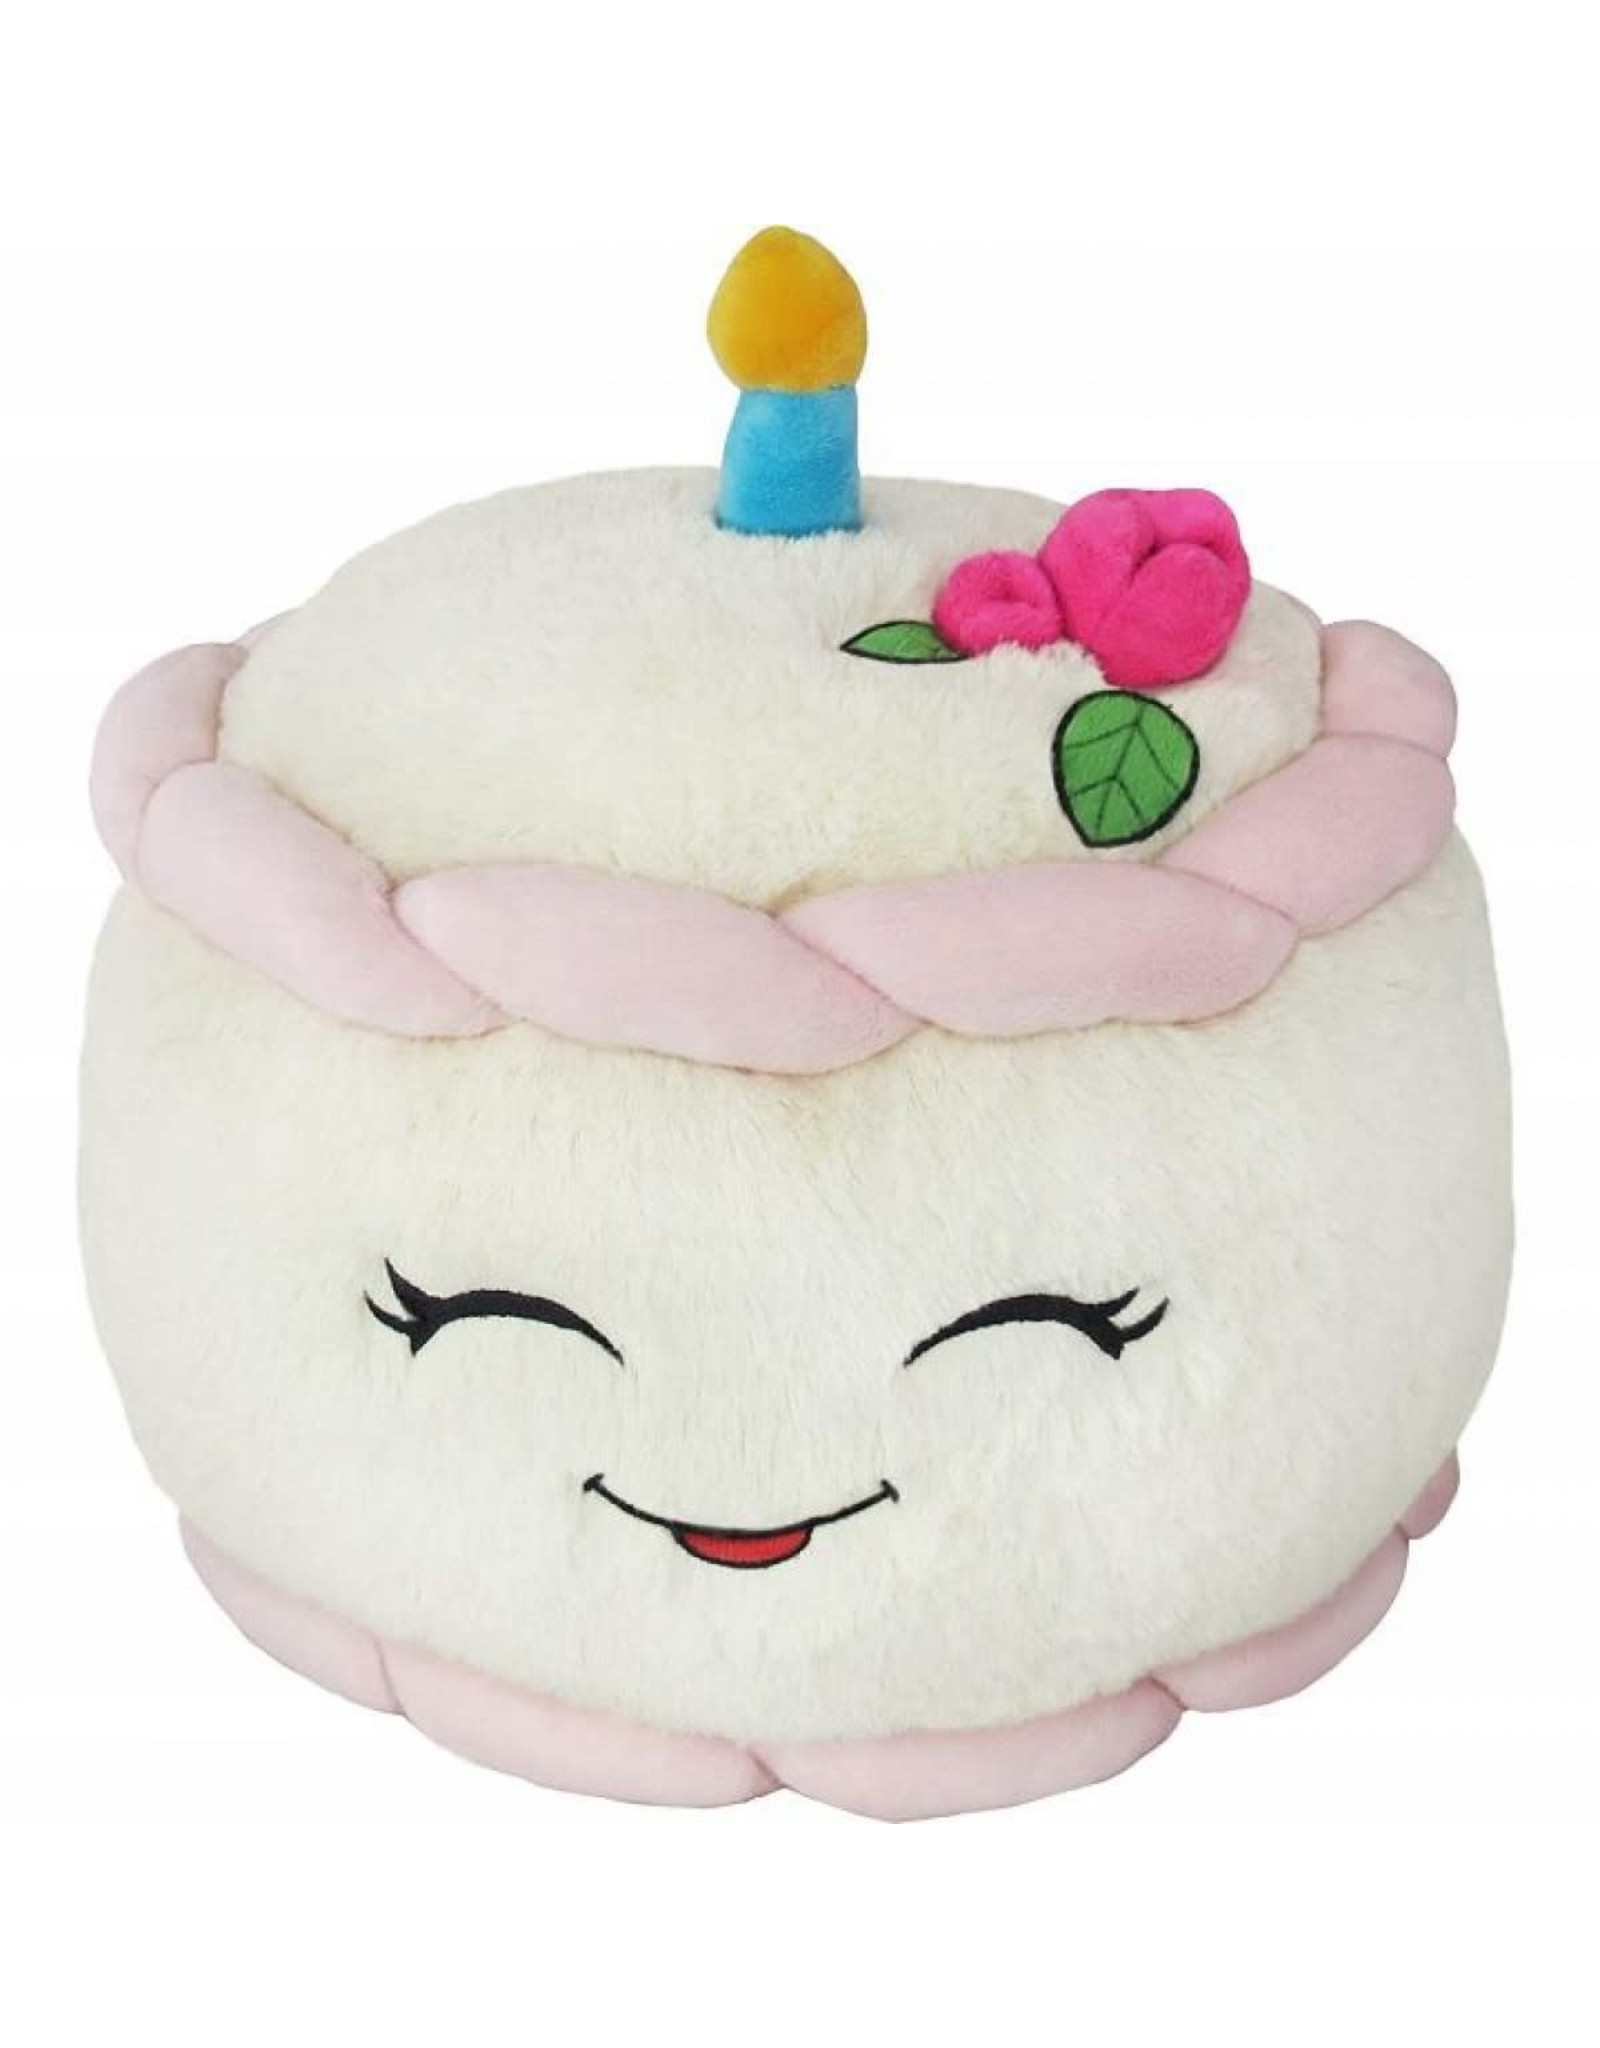 SQUISHABLE BIRTHDAY CAKE 15""